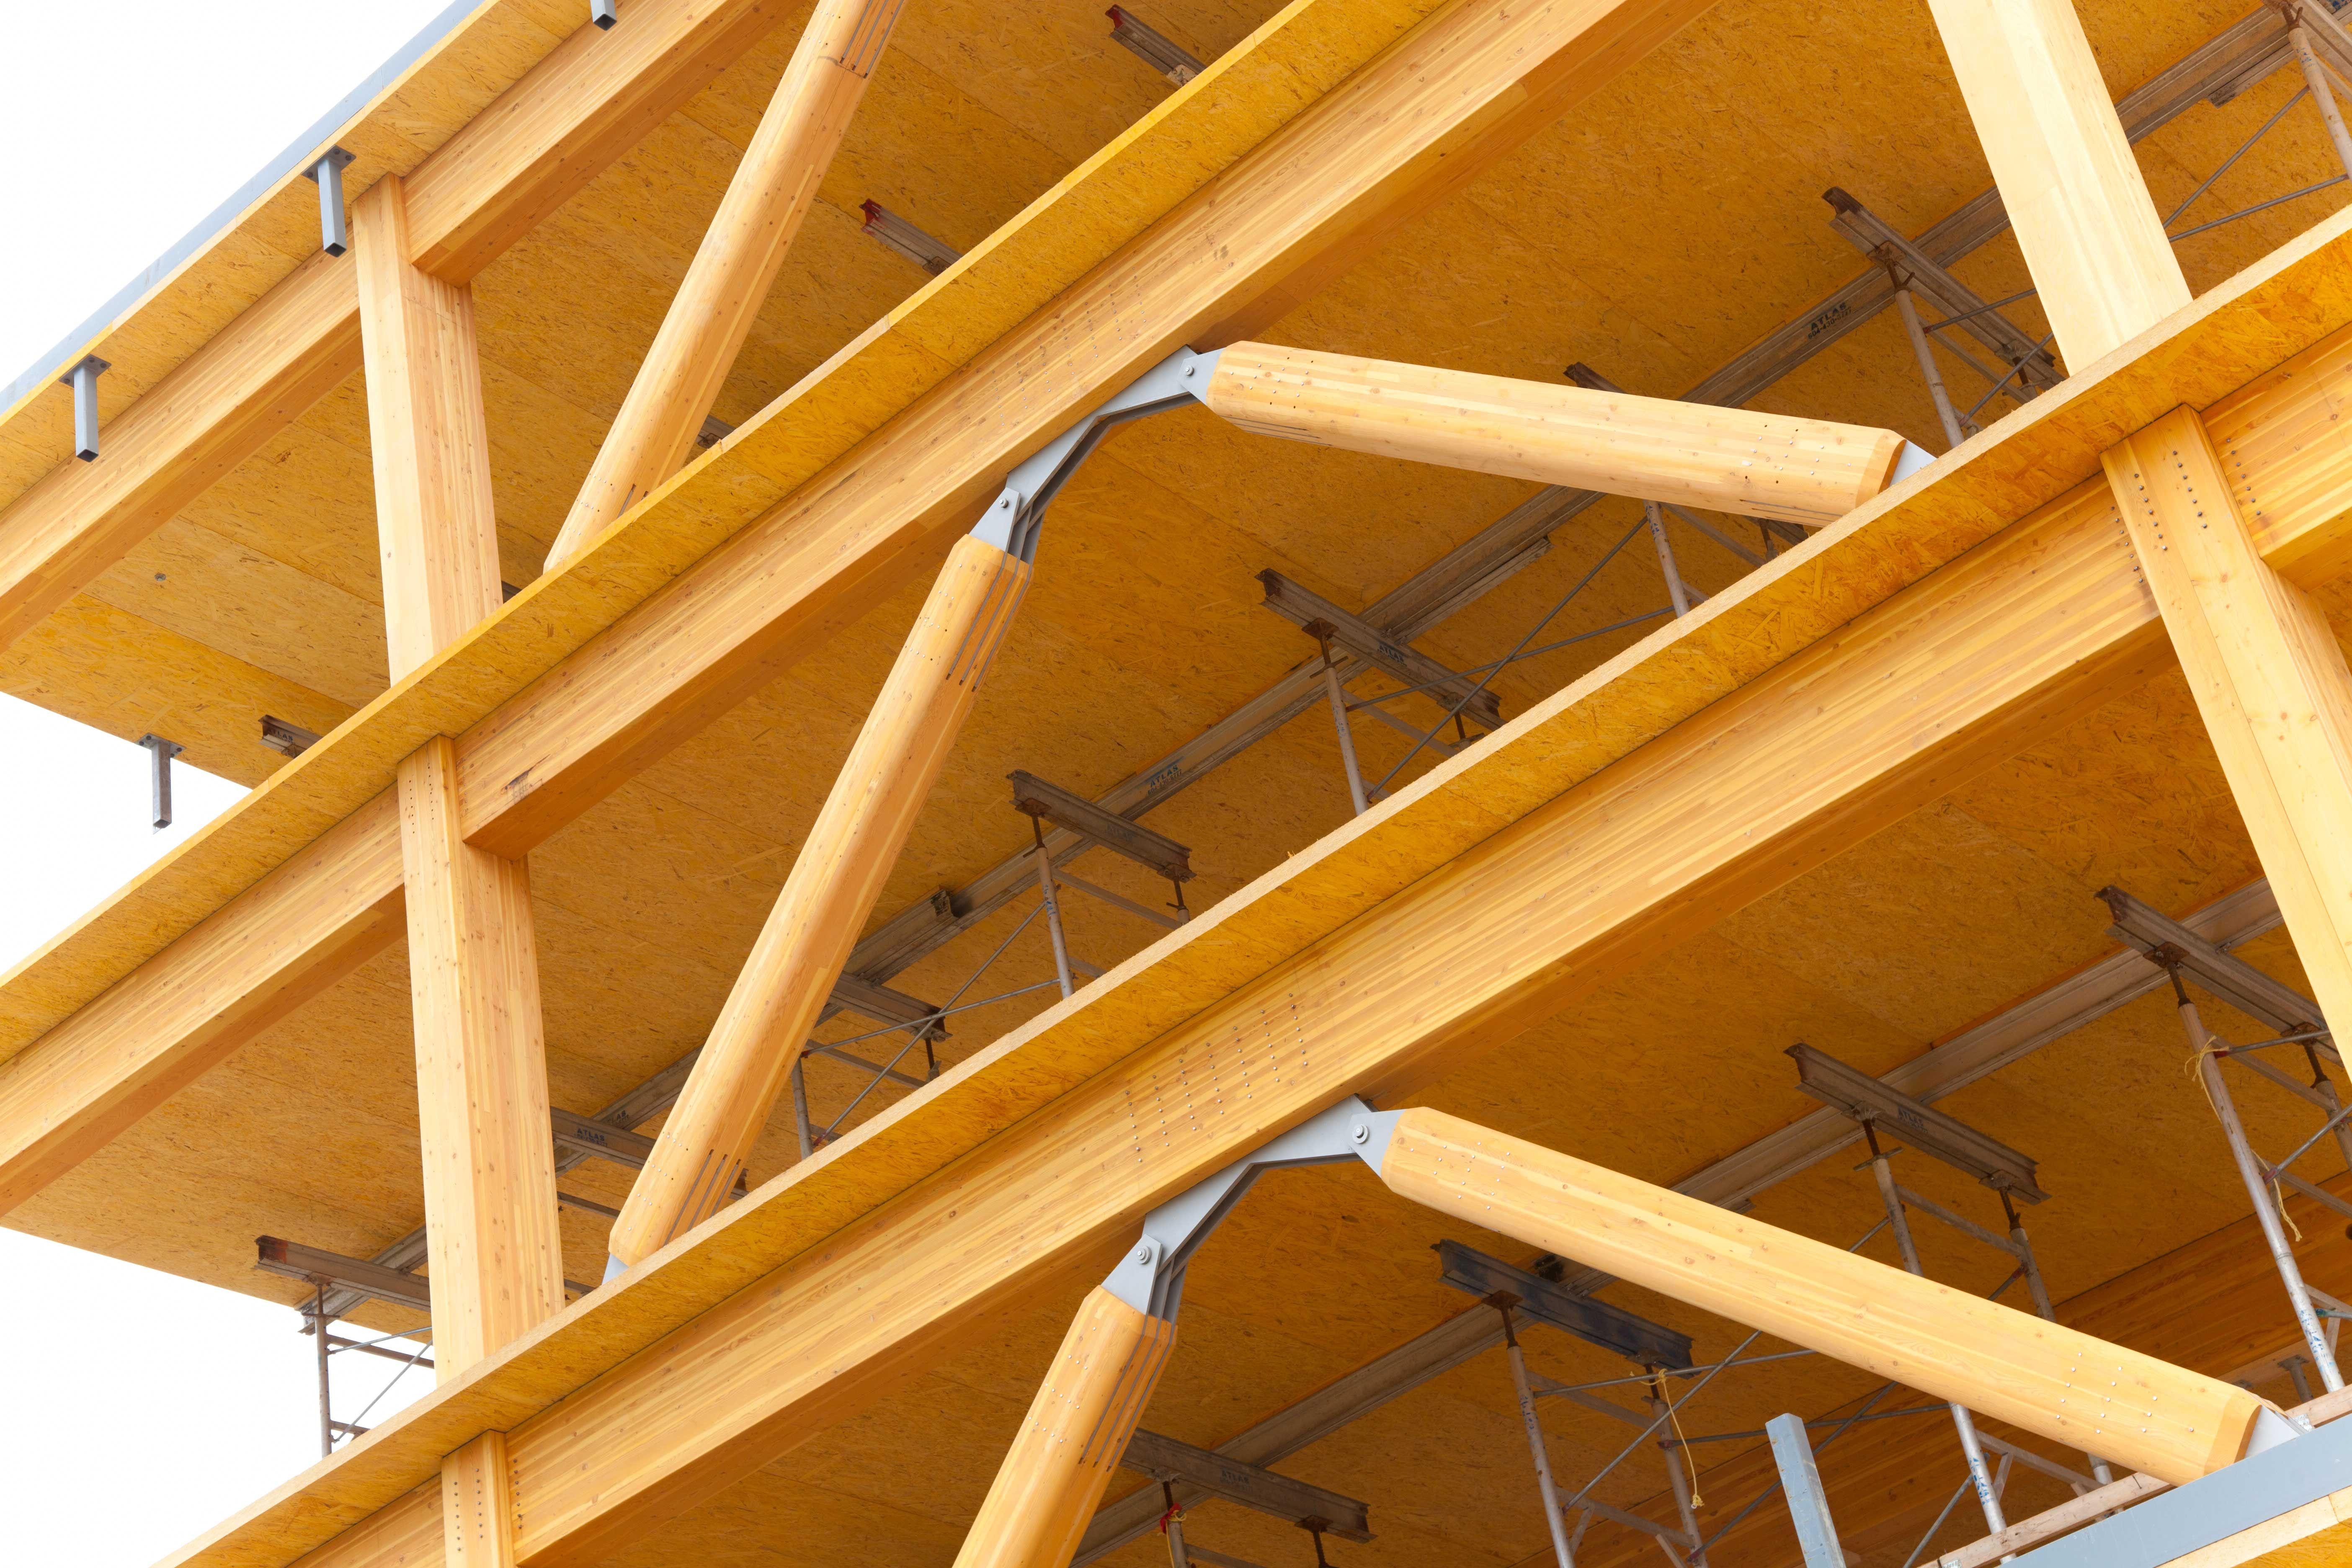 Laminated Wood Structures ~ Image result for glue laminated timber high rise buildings